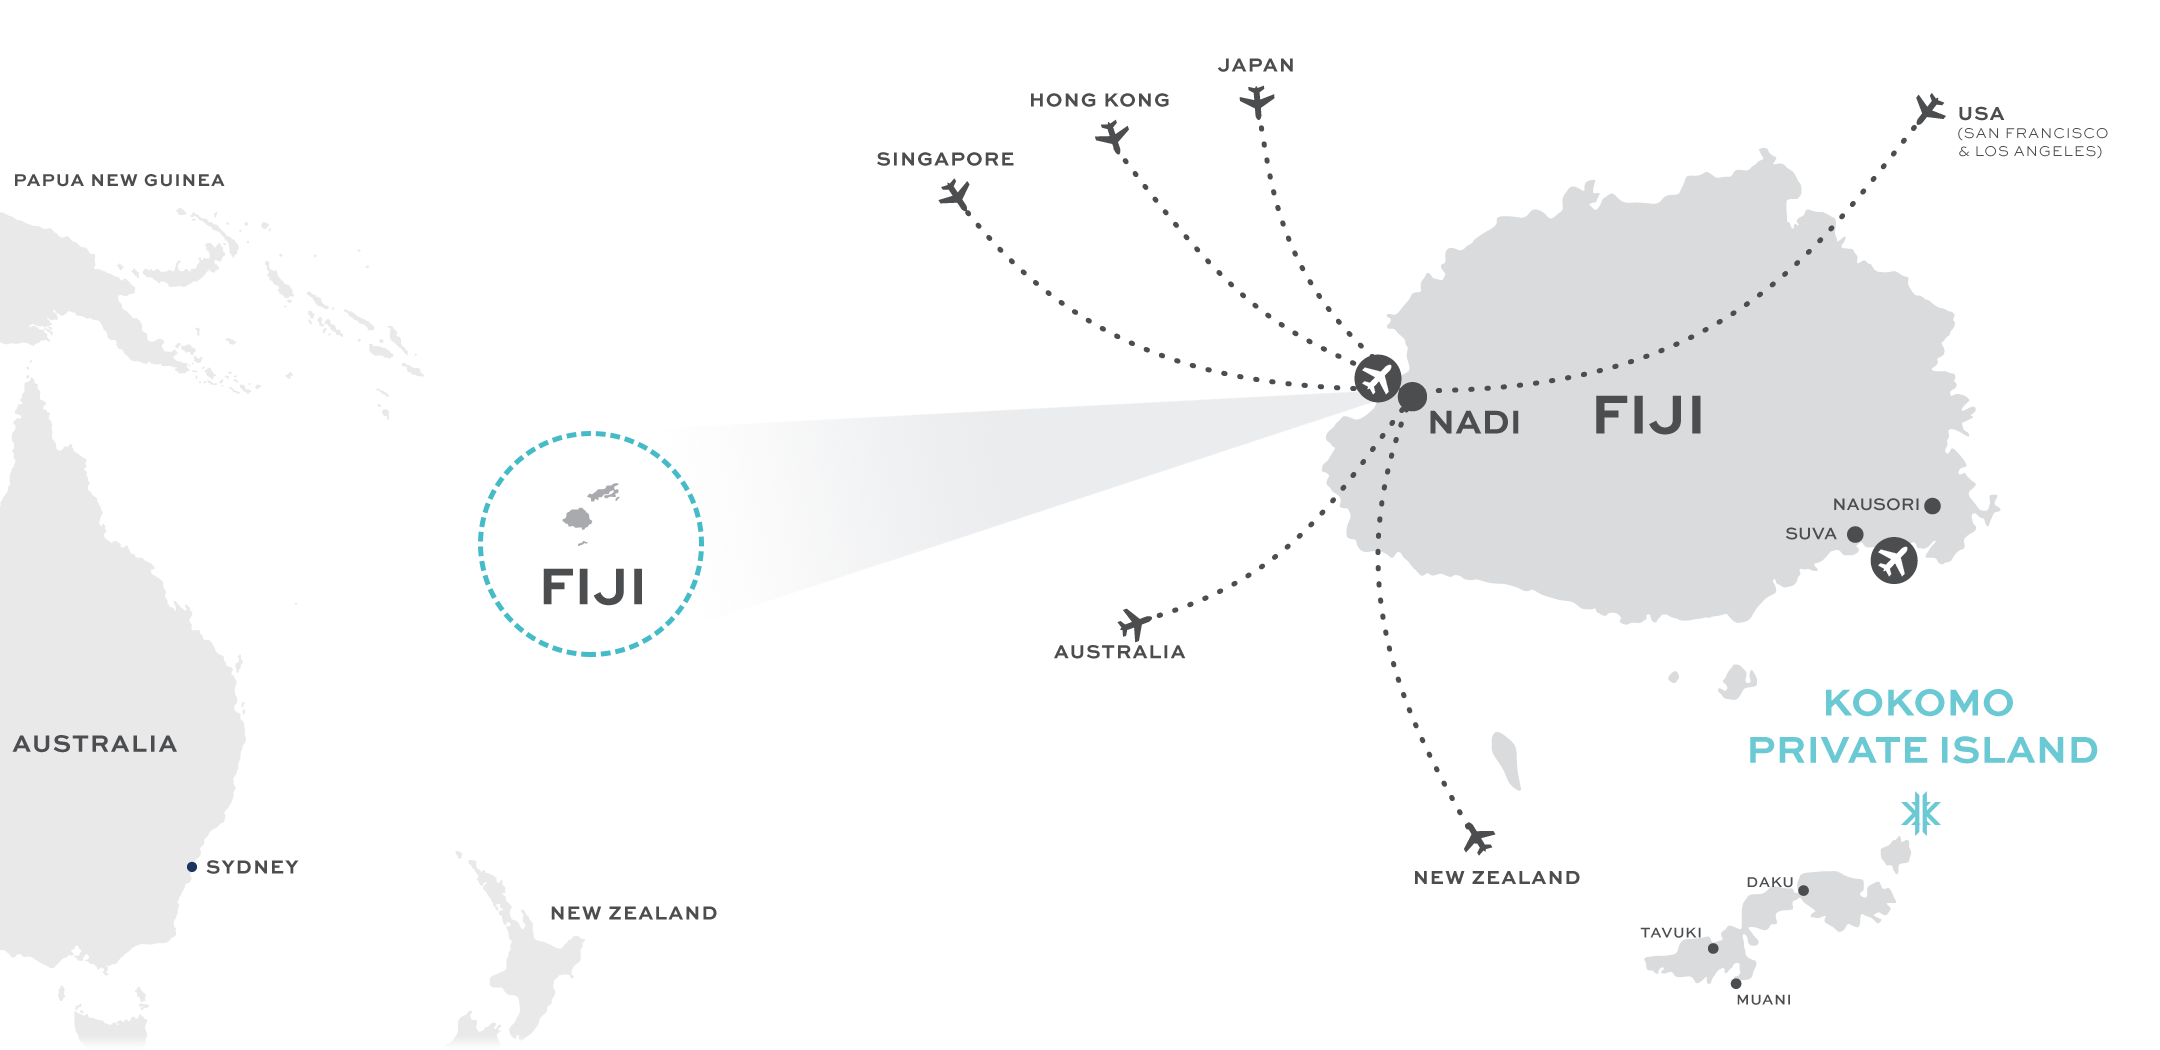 A map showing flights to Fiji from a number of major cities